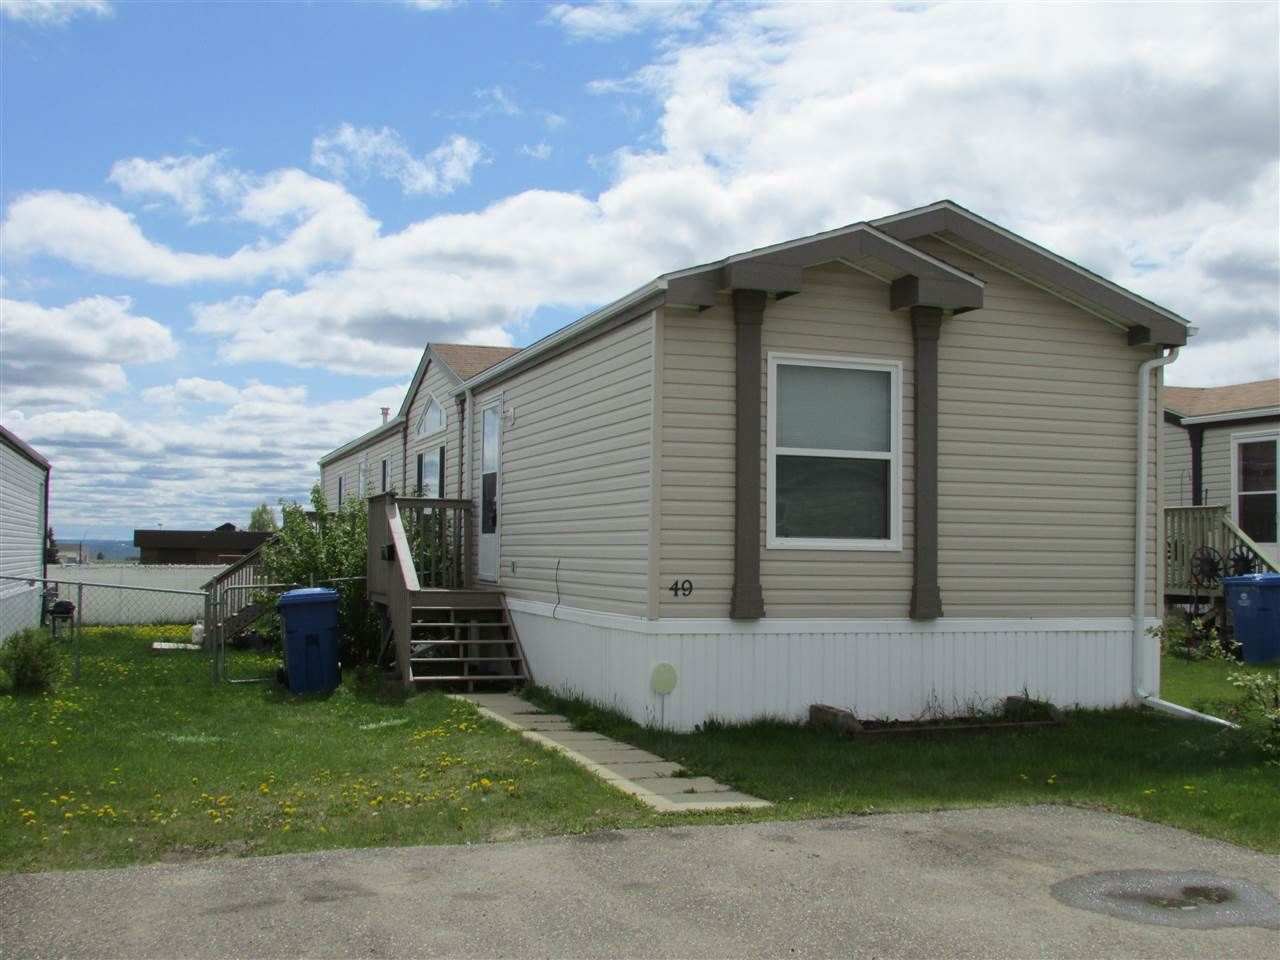 """Main Photo: 49 9203 82 Street in Fort St. John: Fort St. John - City SE Manufactured Home for sale in """"THE COURTYARD"""" (Fort St. John (Zone 60))  : MLS®# R2074488"""